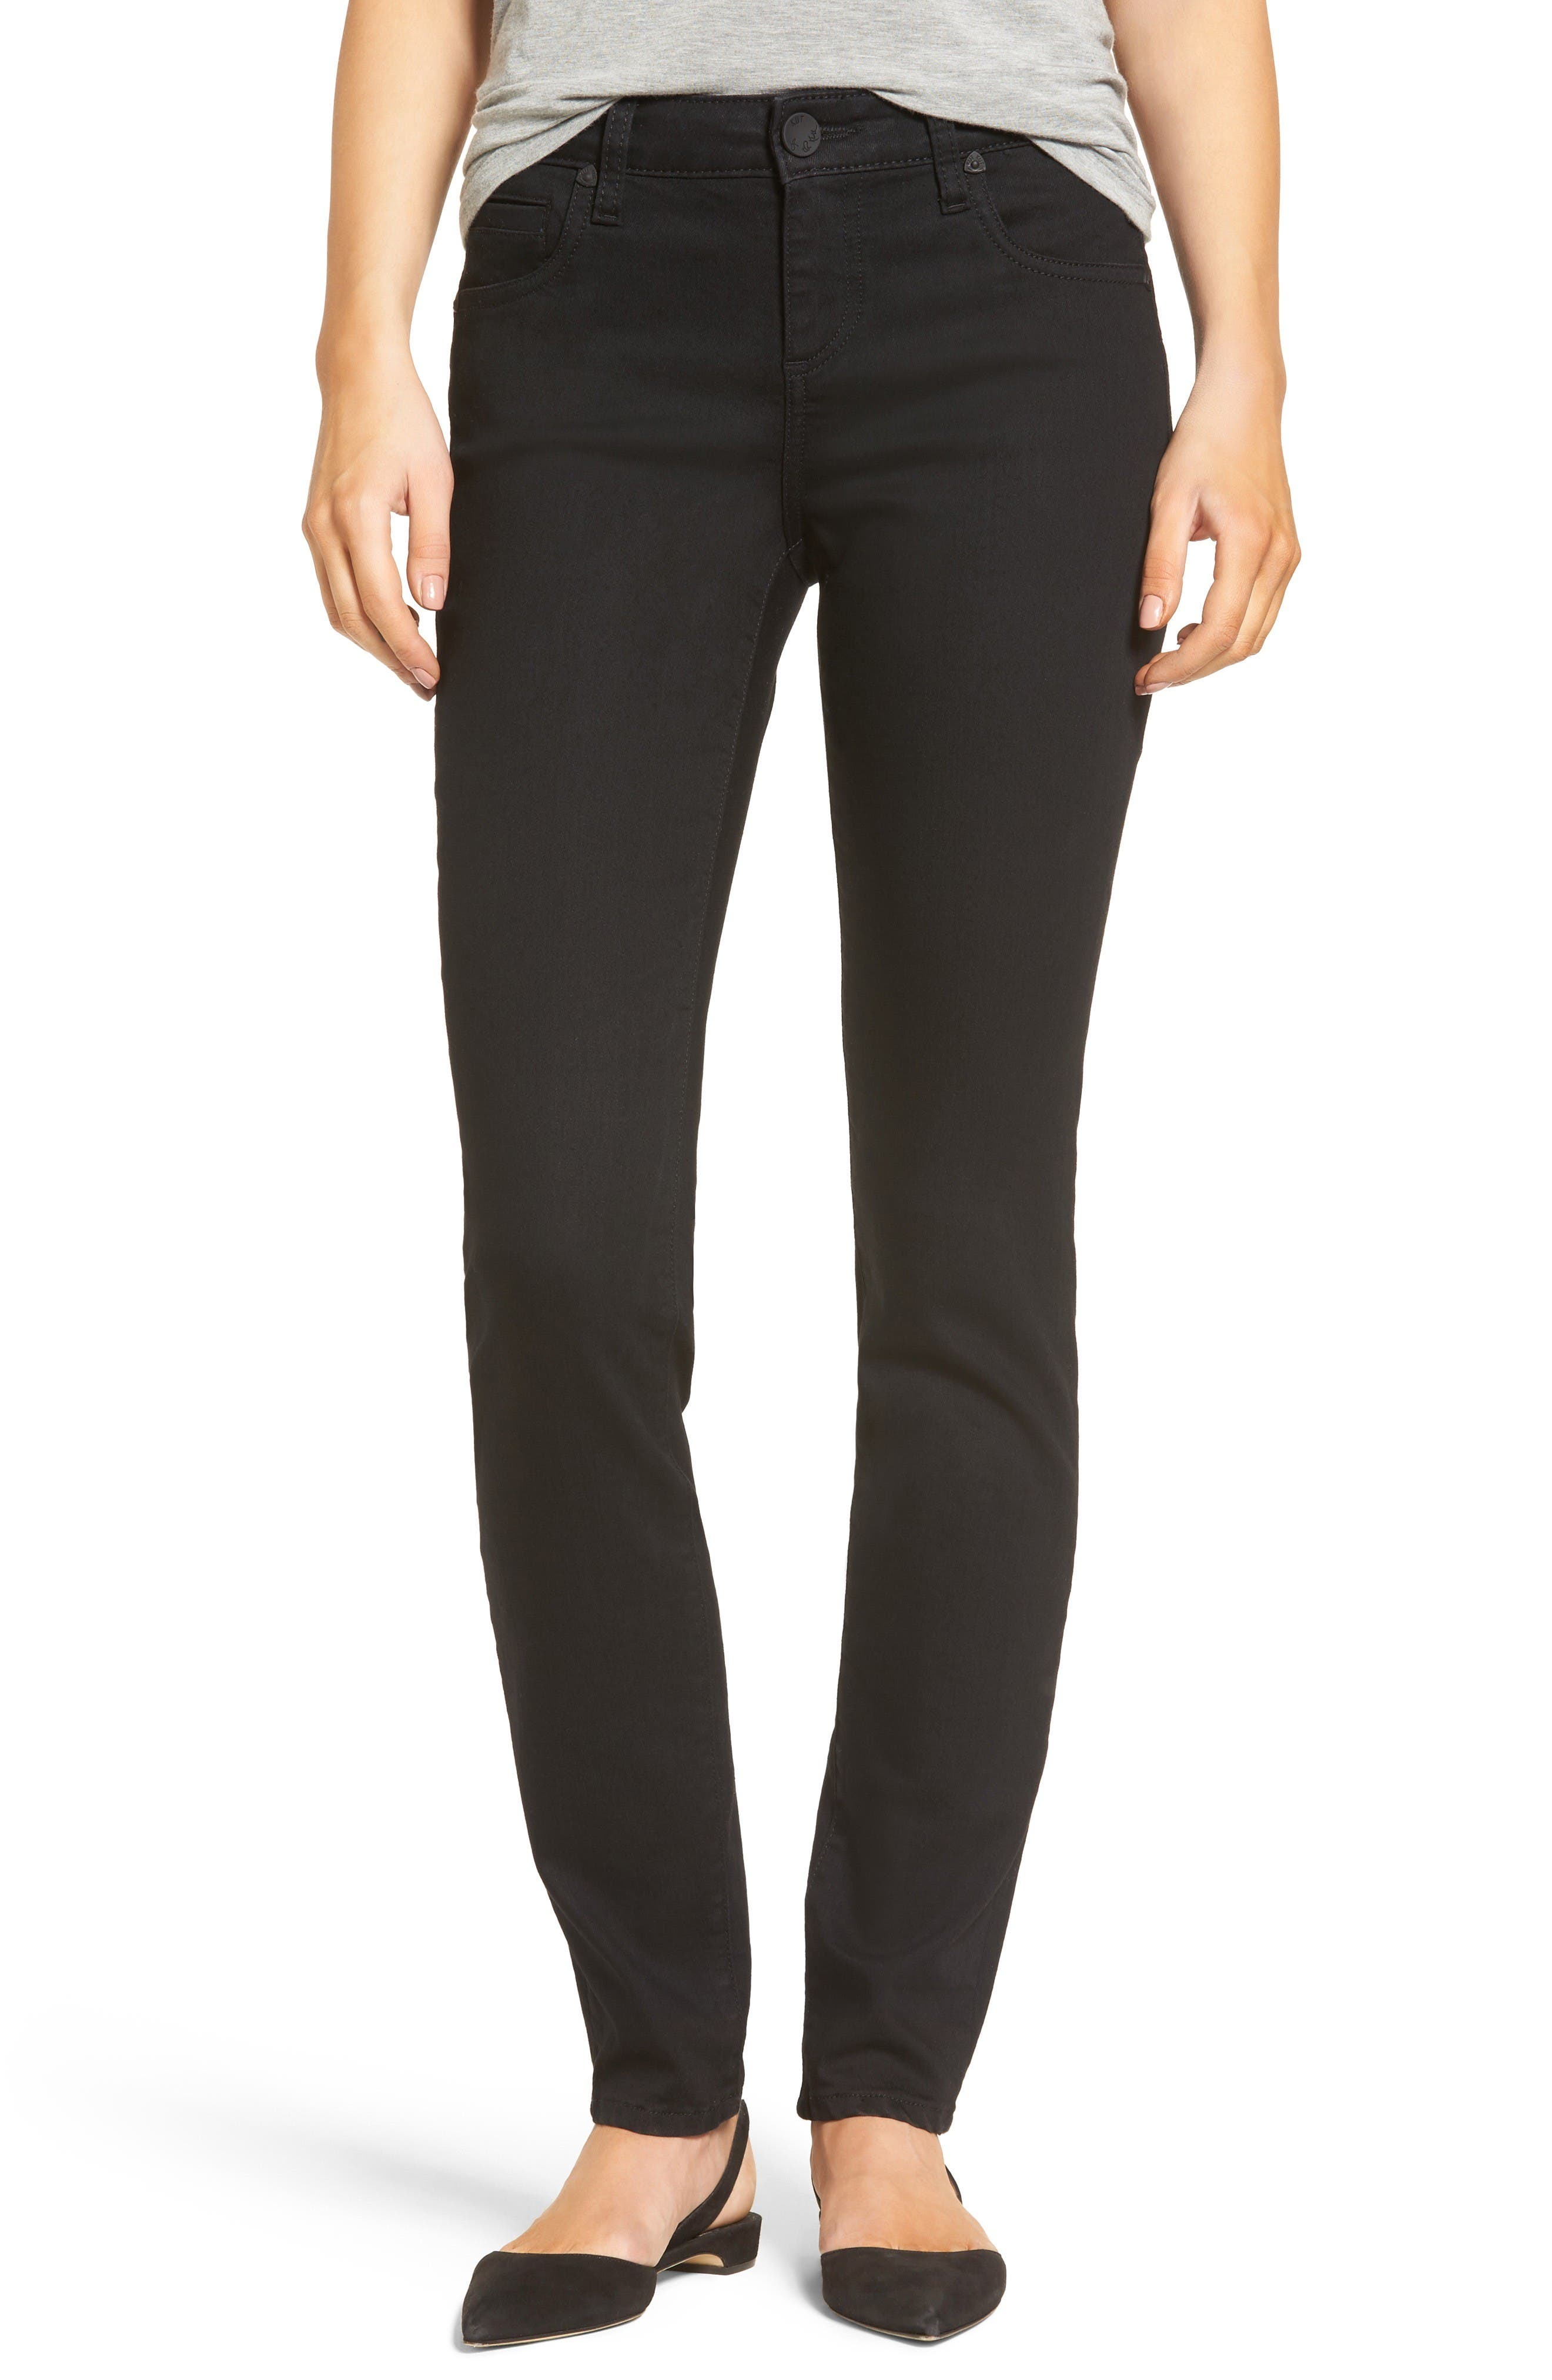 Alternate Image 1 Selected - KUT from the Kloth Diana Stretch Skinny Jeans (Regular & Petite)